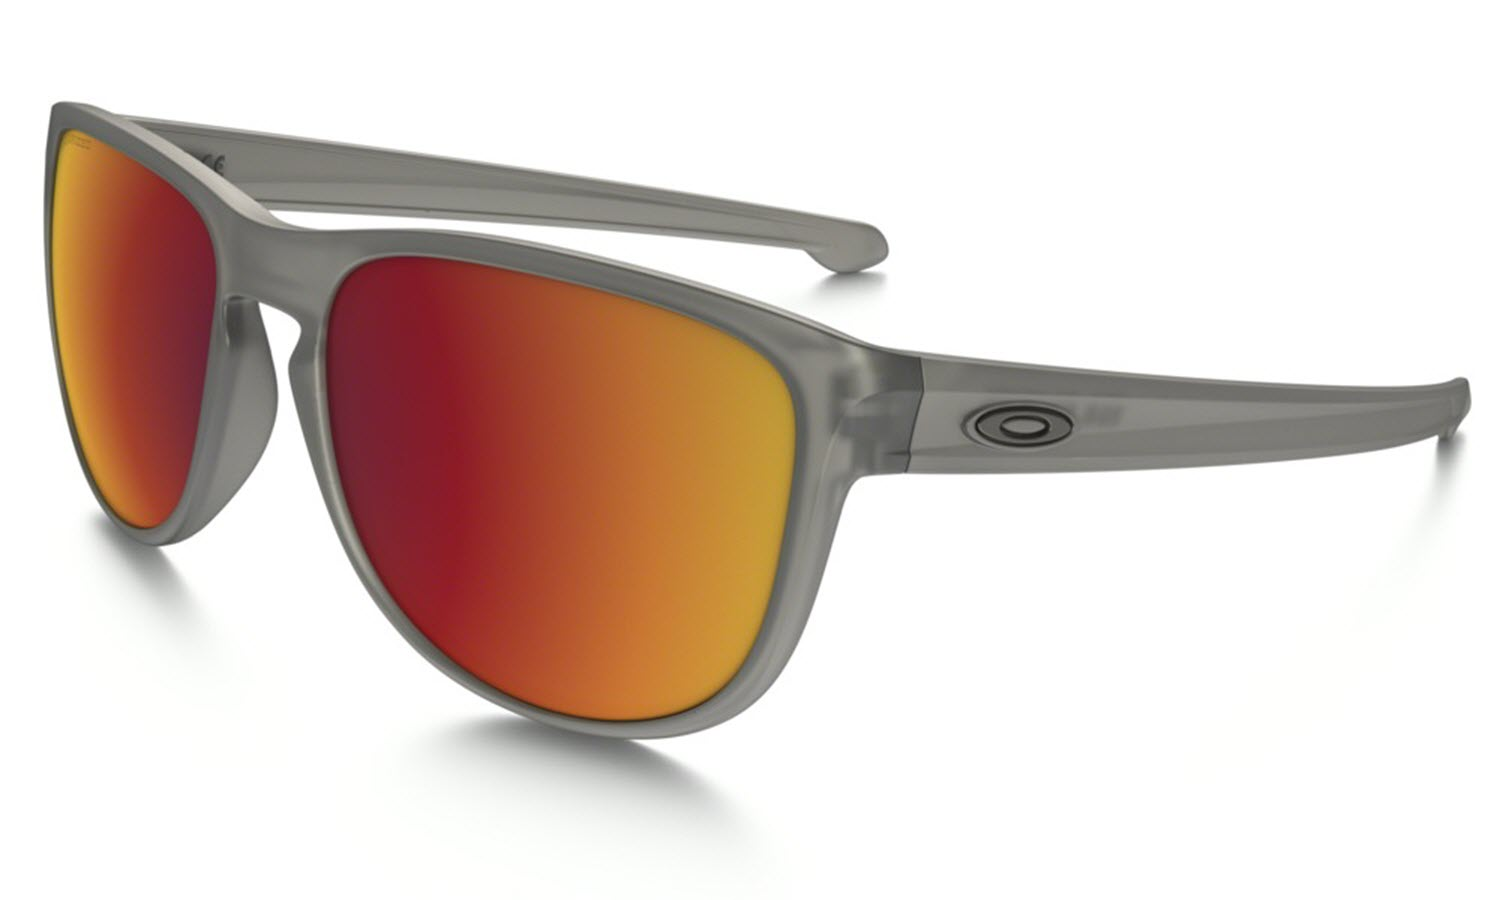 45ecc49625 usa cheap oakley sunglasses united states quizlet 3185b 09e94  release date  australia the board basement oakley sliver r sunglasses 7a36e 16bc3 7dd03  4b264